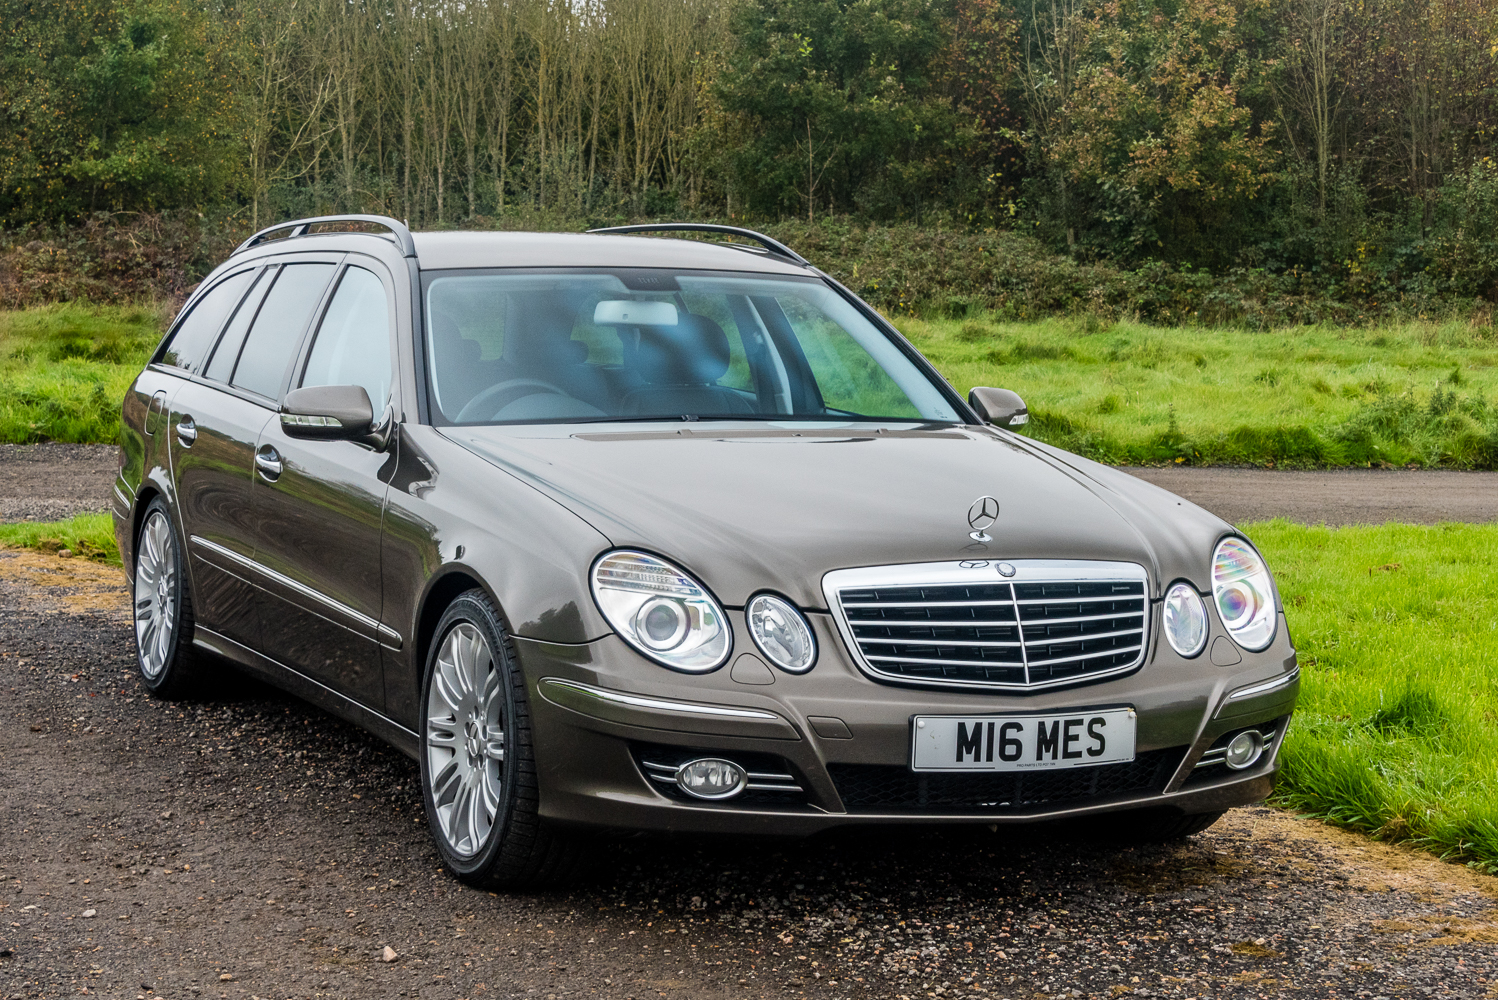 Mercedes benz e280 sport estate cdi turnbull oliver for Mercedes benz uk used